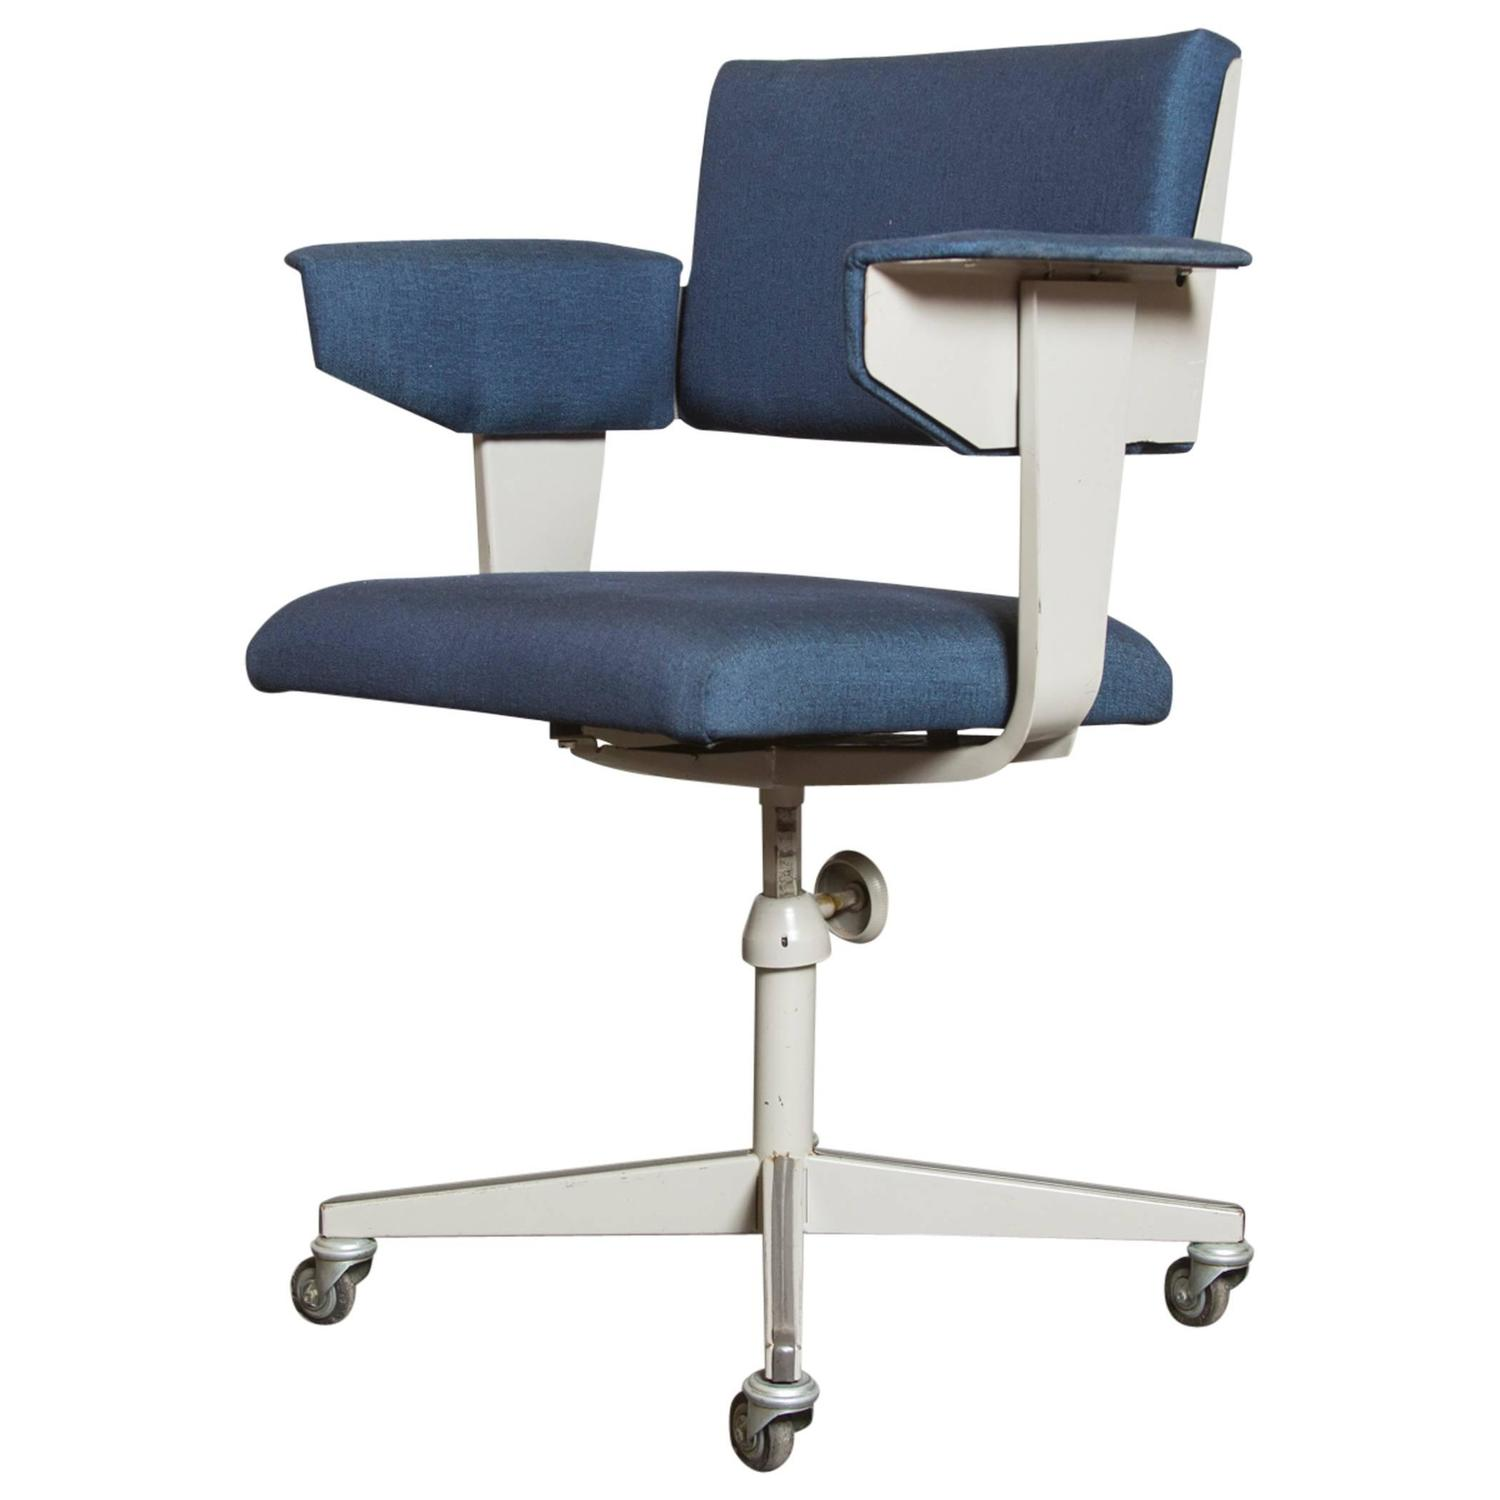 Roller Chairs Friso Kramer Quotresort Quot Rolling Office Chair For Sale At 1stdibs